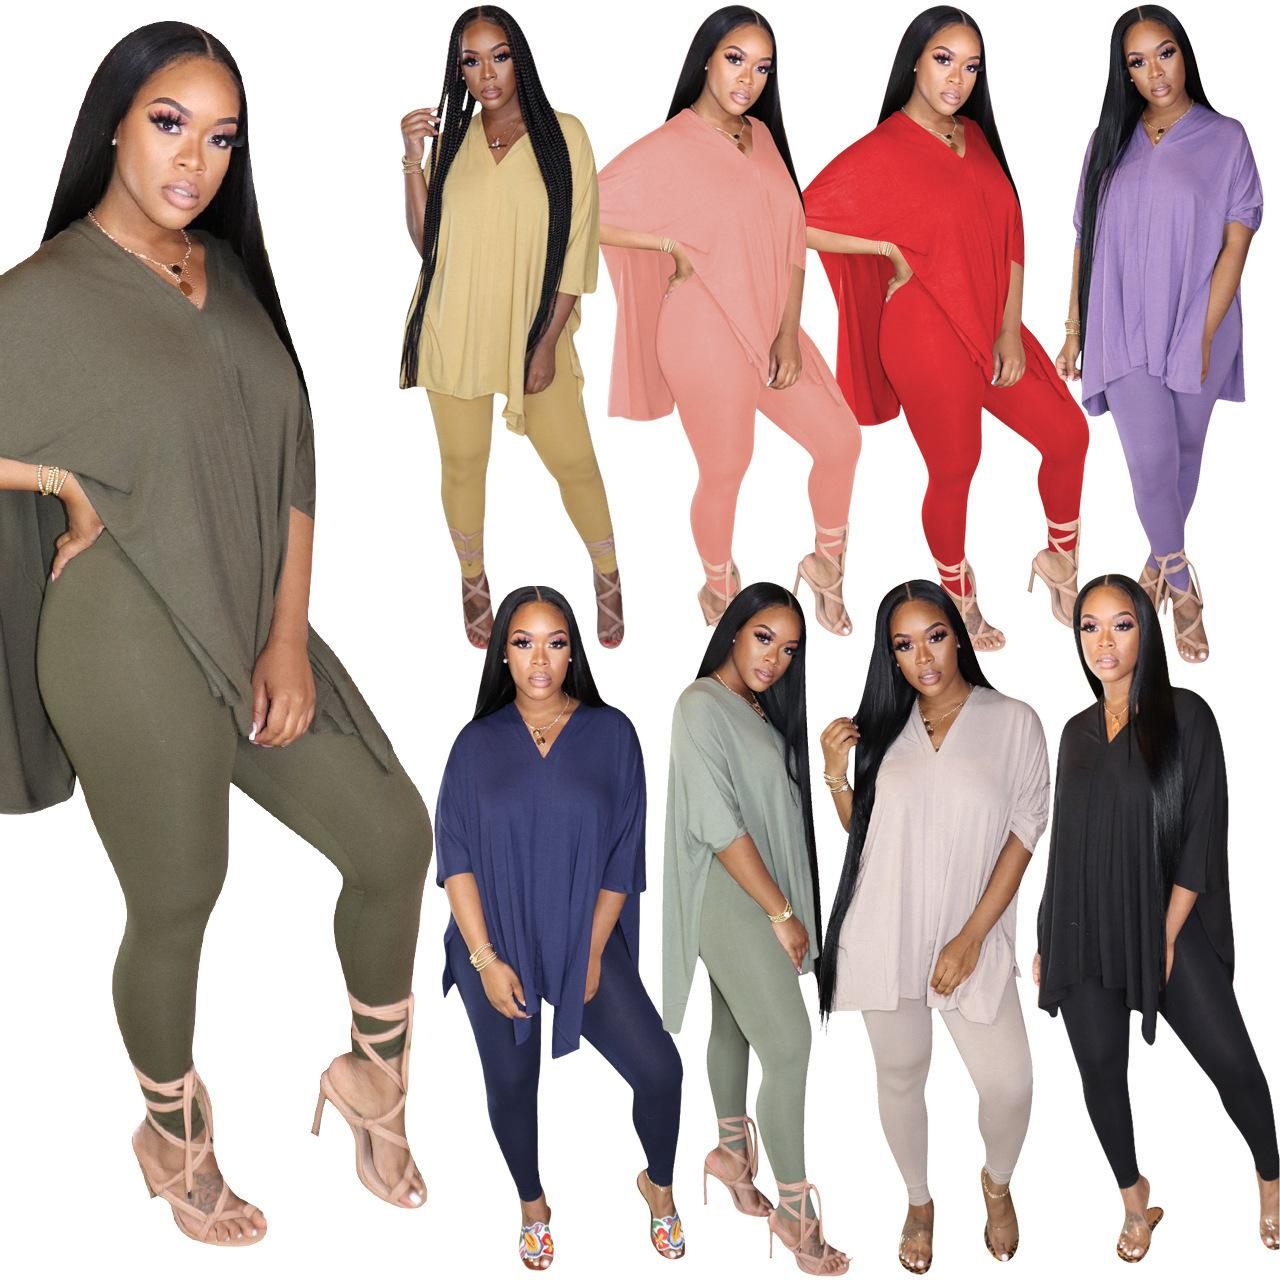 Women Two Pieces Tracksuits Solid Color Long Sleeved Jogger Set Pullover Sportswear Casual Autumn Spring Sport Outfits Plus Size Clothing